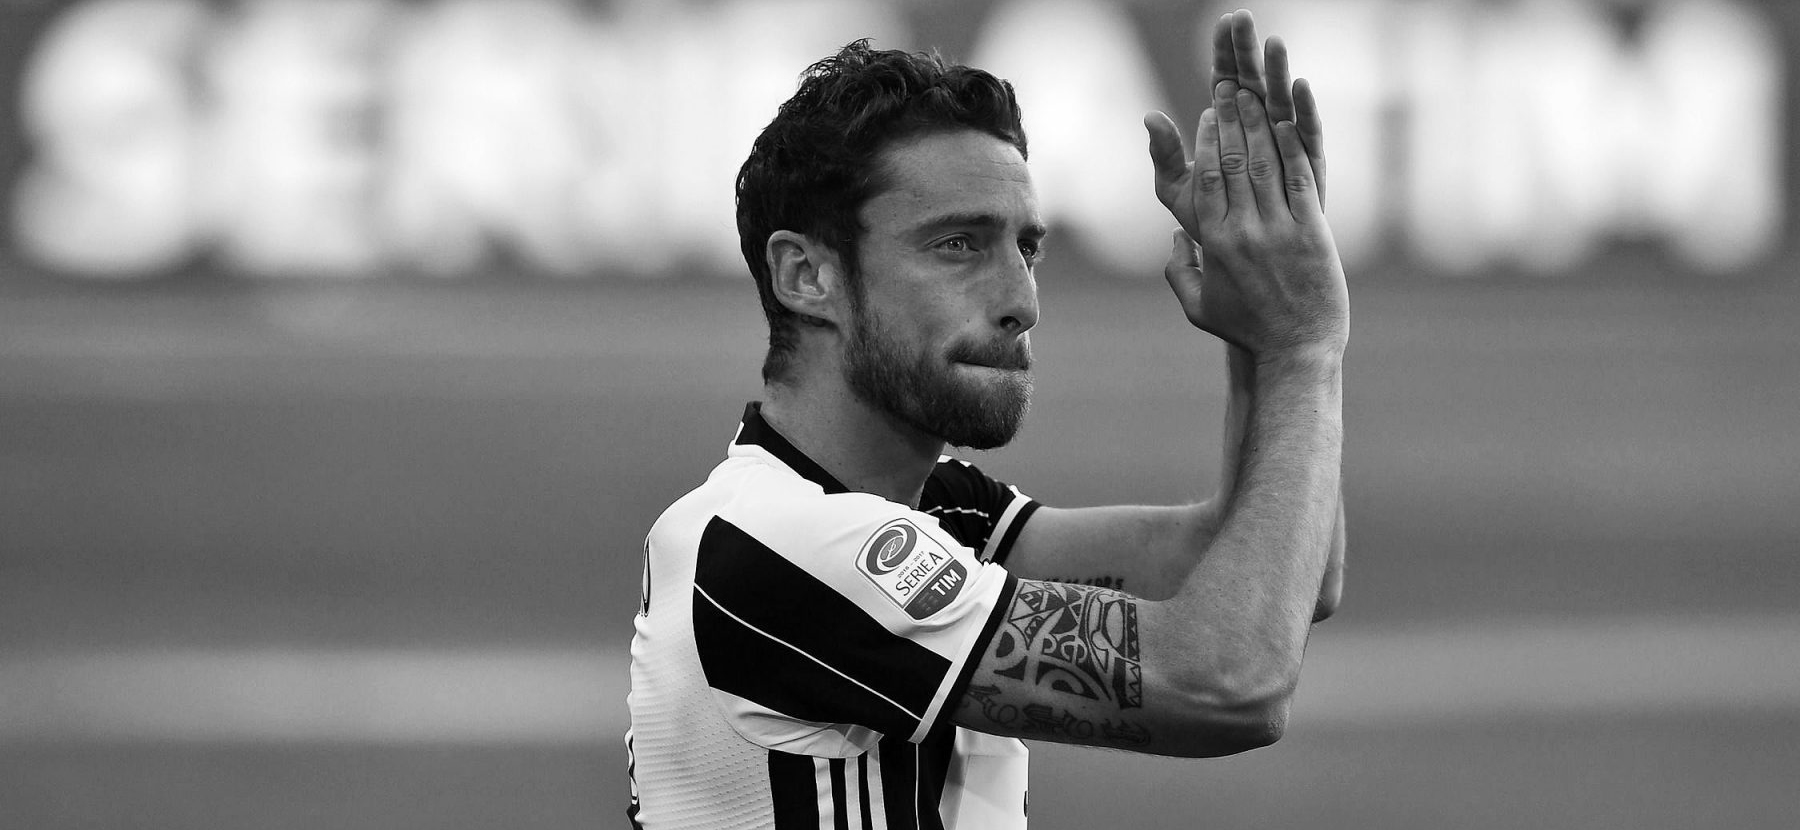 Marchisio becomes Zenit player